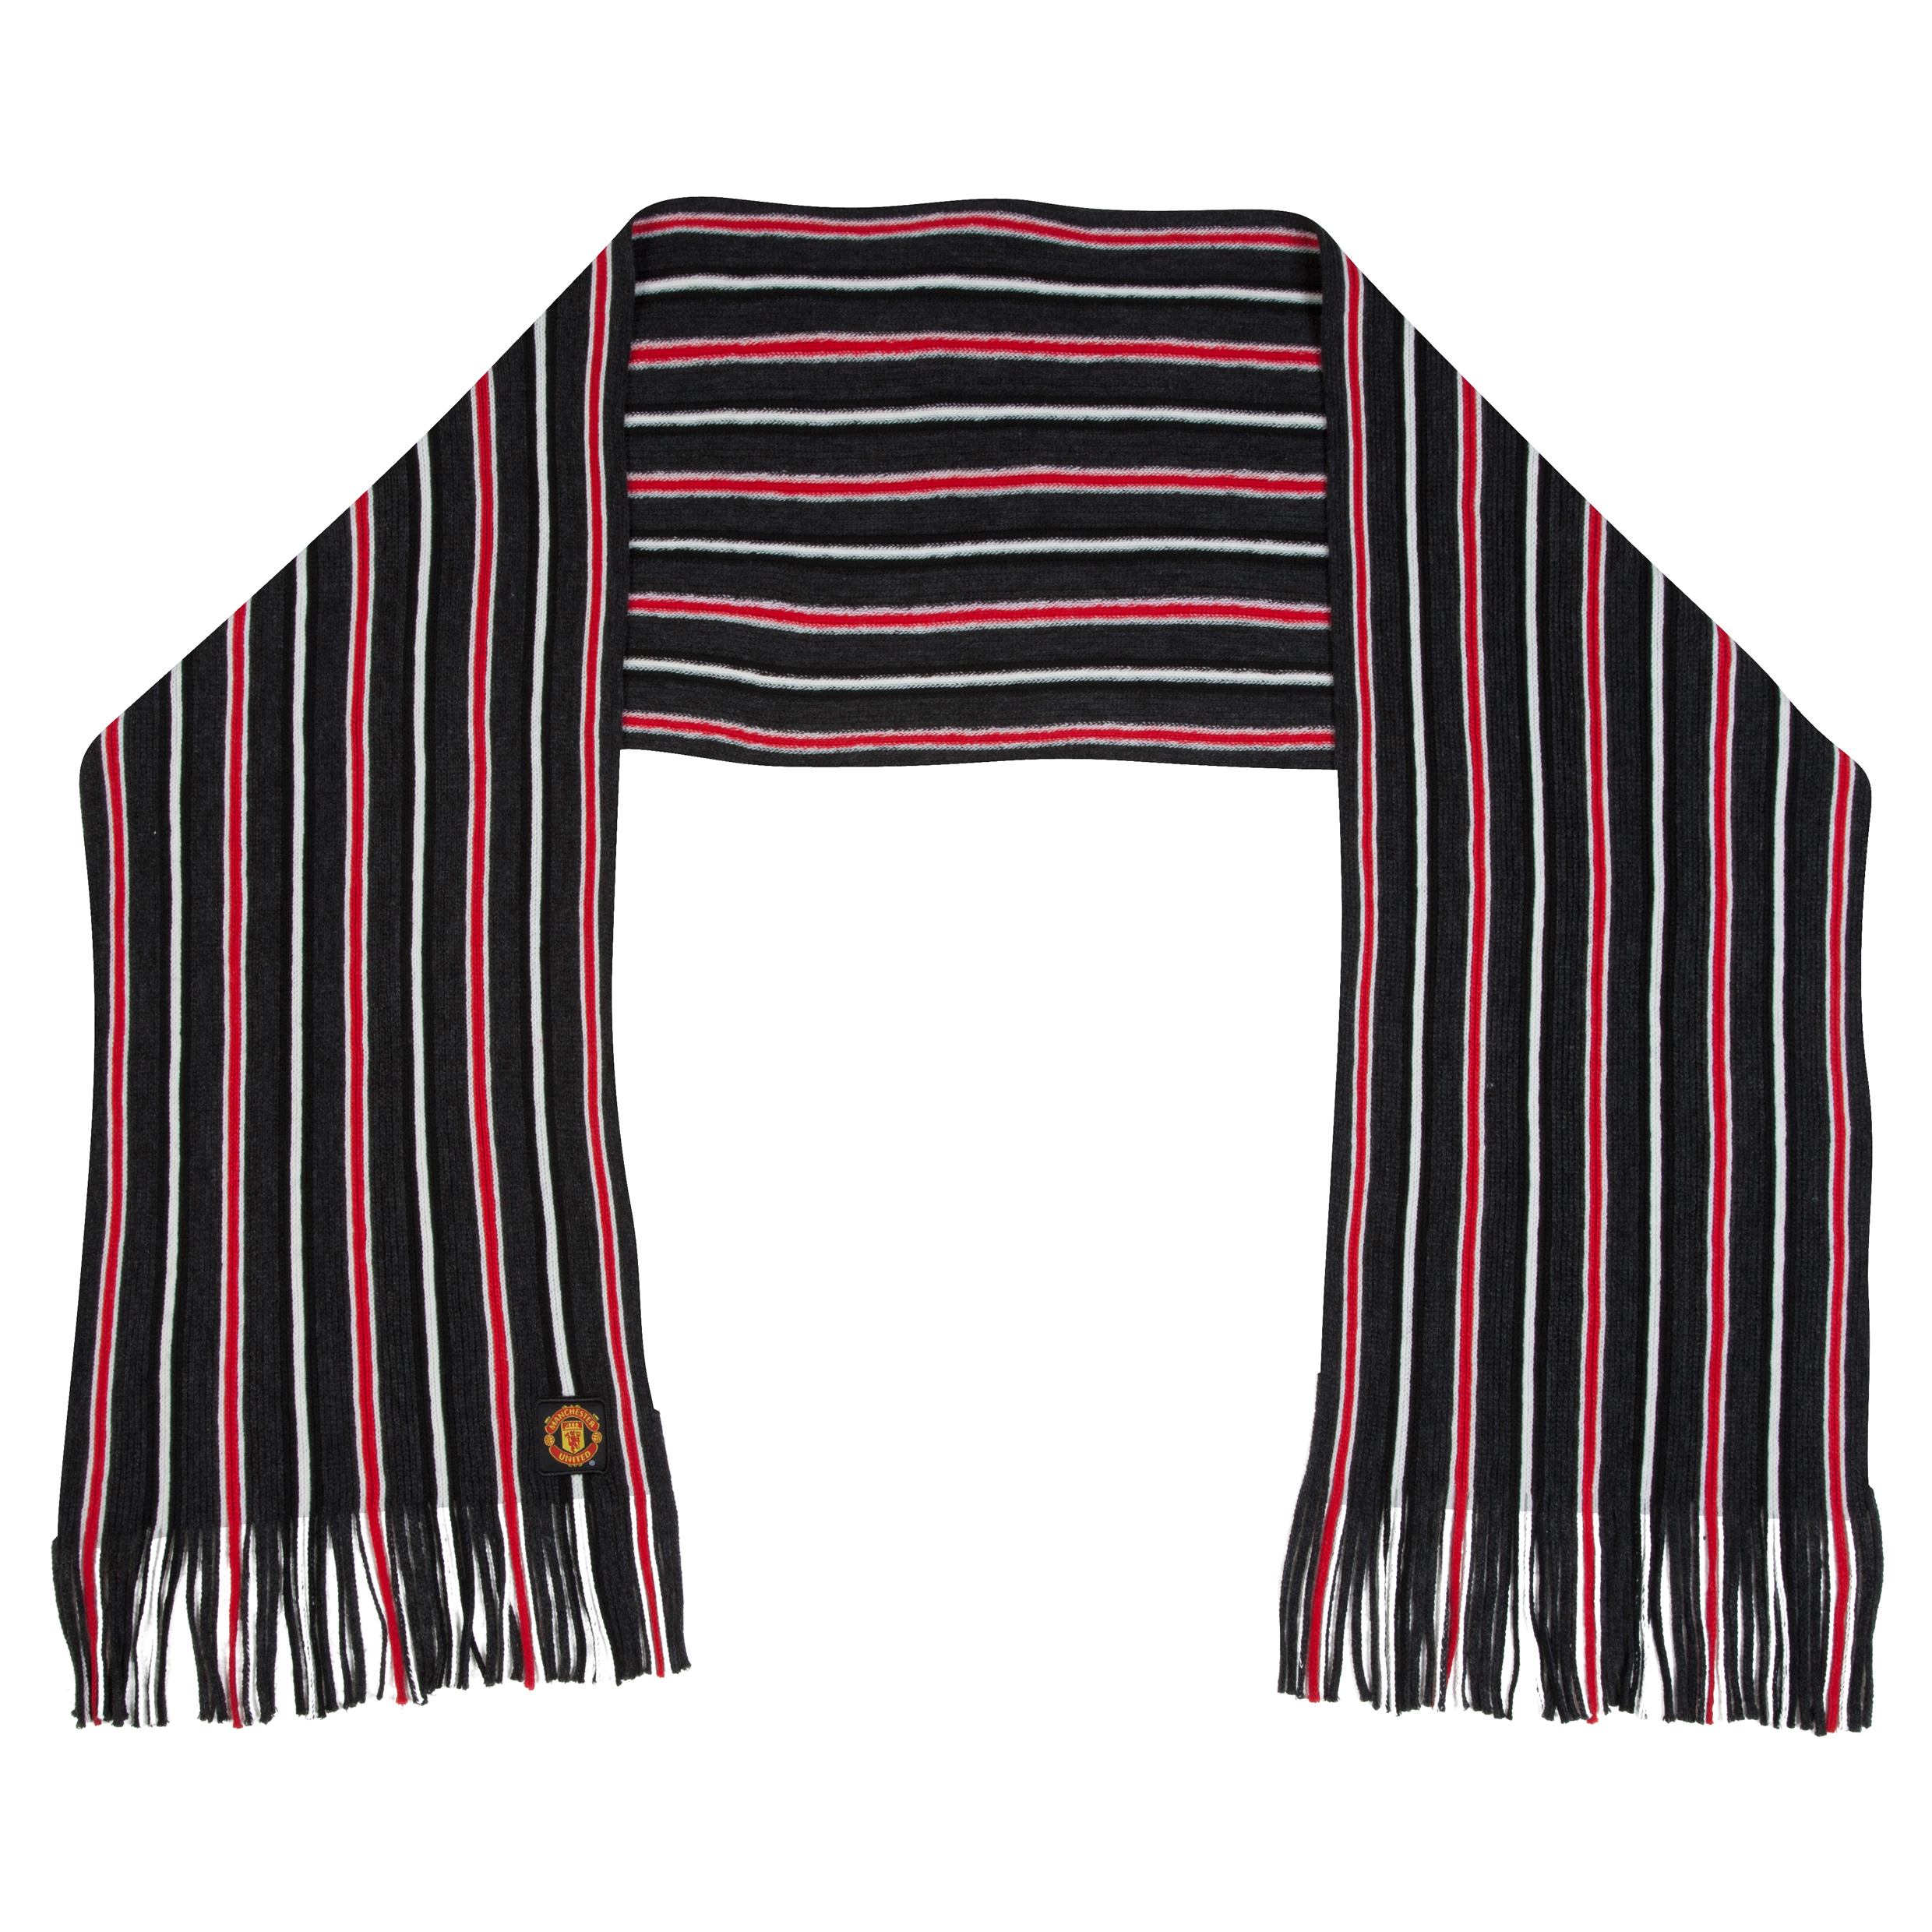 Manchester United Striped Fashion Scarf - Adult